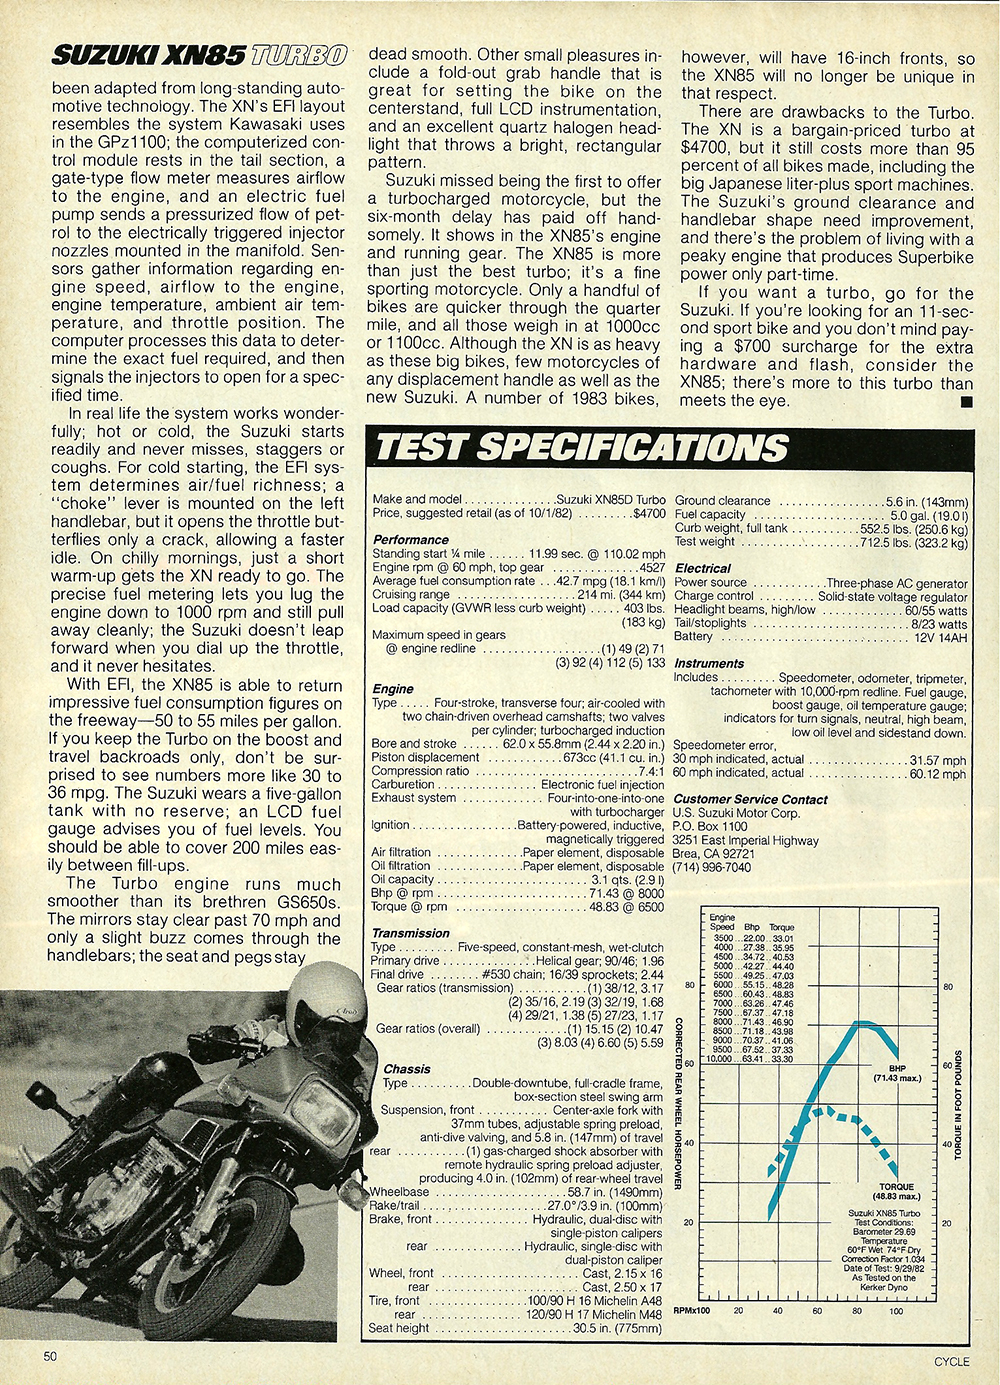 1983 Suzuki XN85 Turbo road test 8.jpg